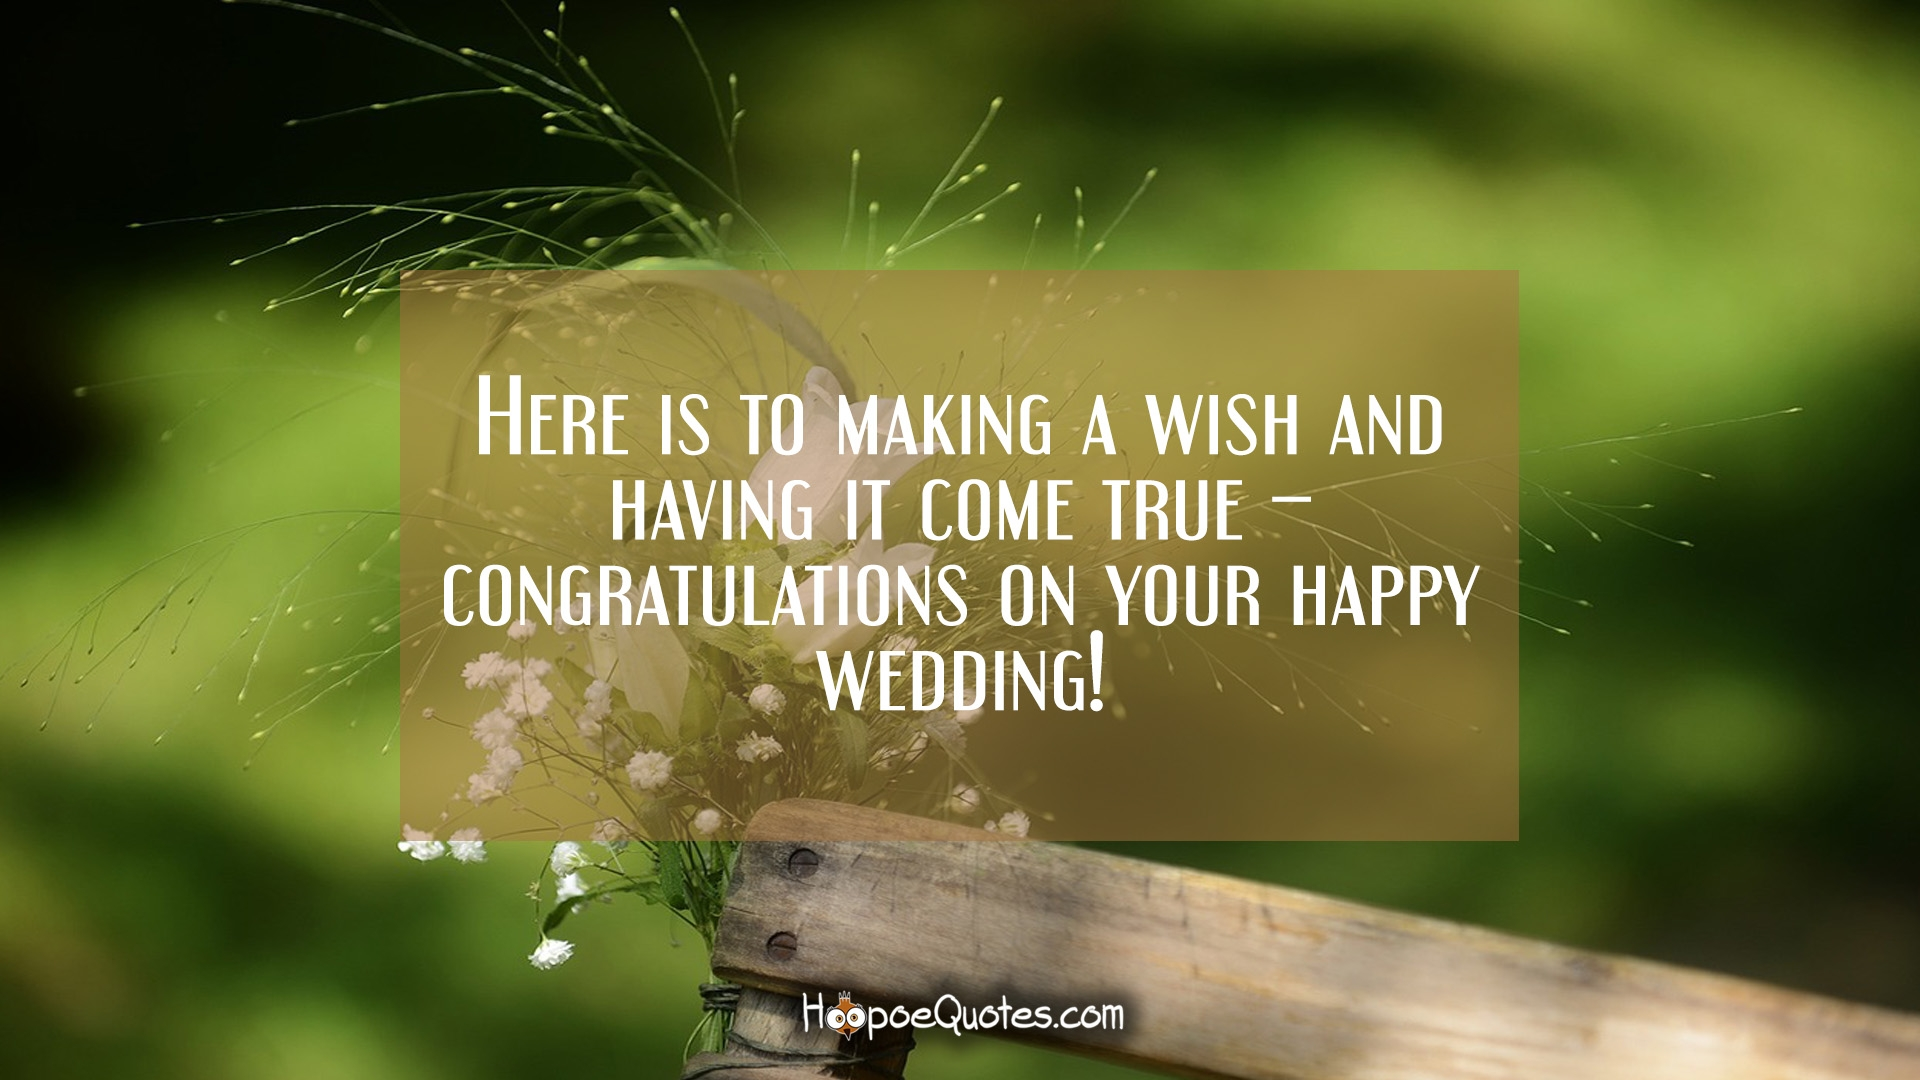 Here Is To Making A Wish And Having It Come True Congratulations On Your Happy